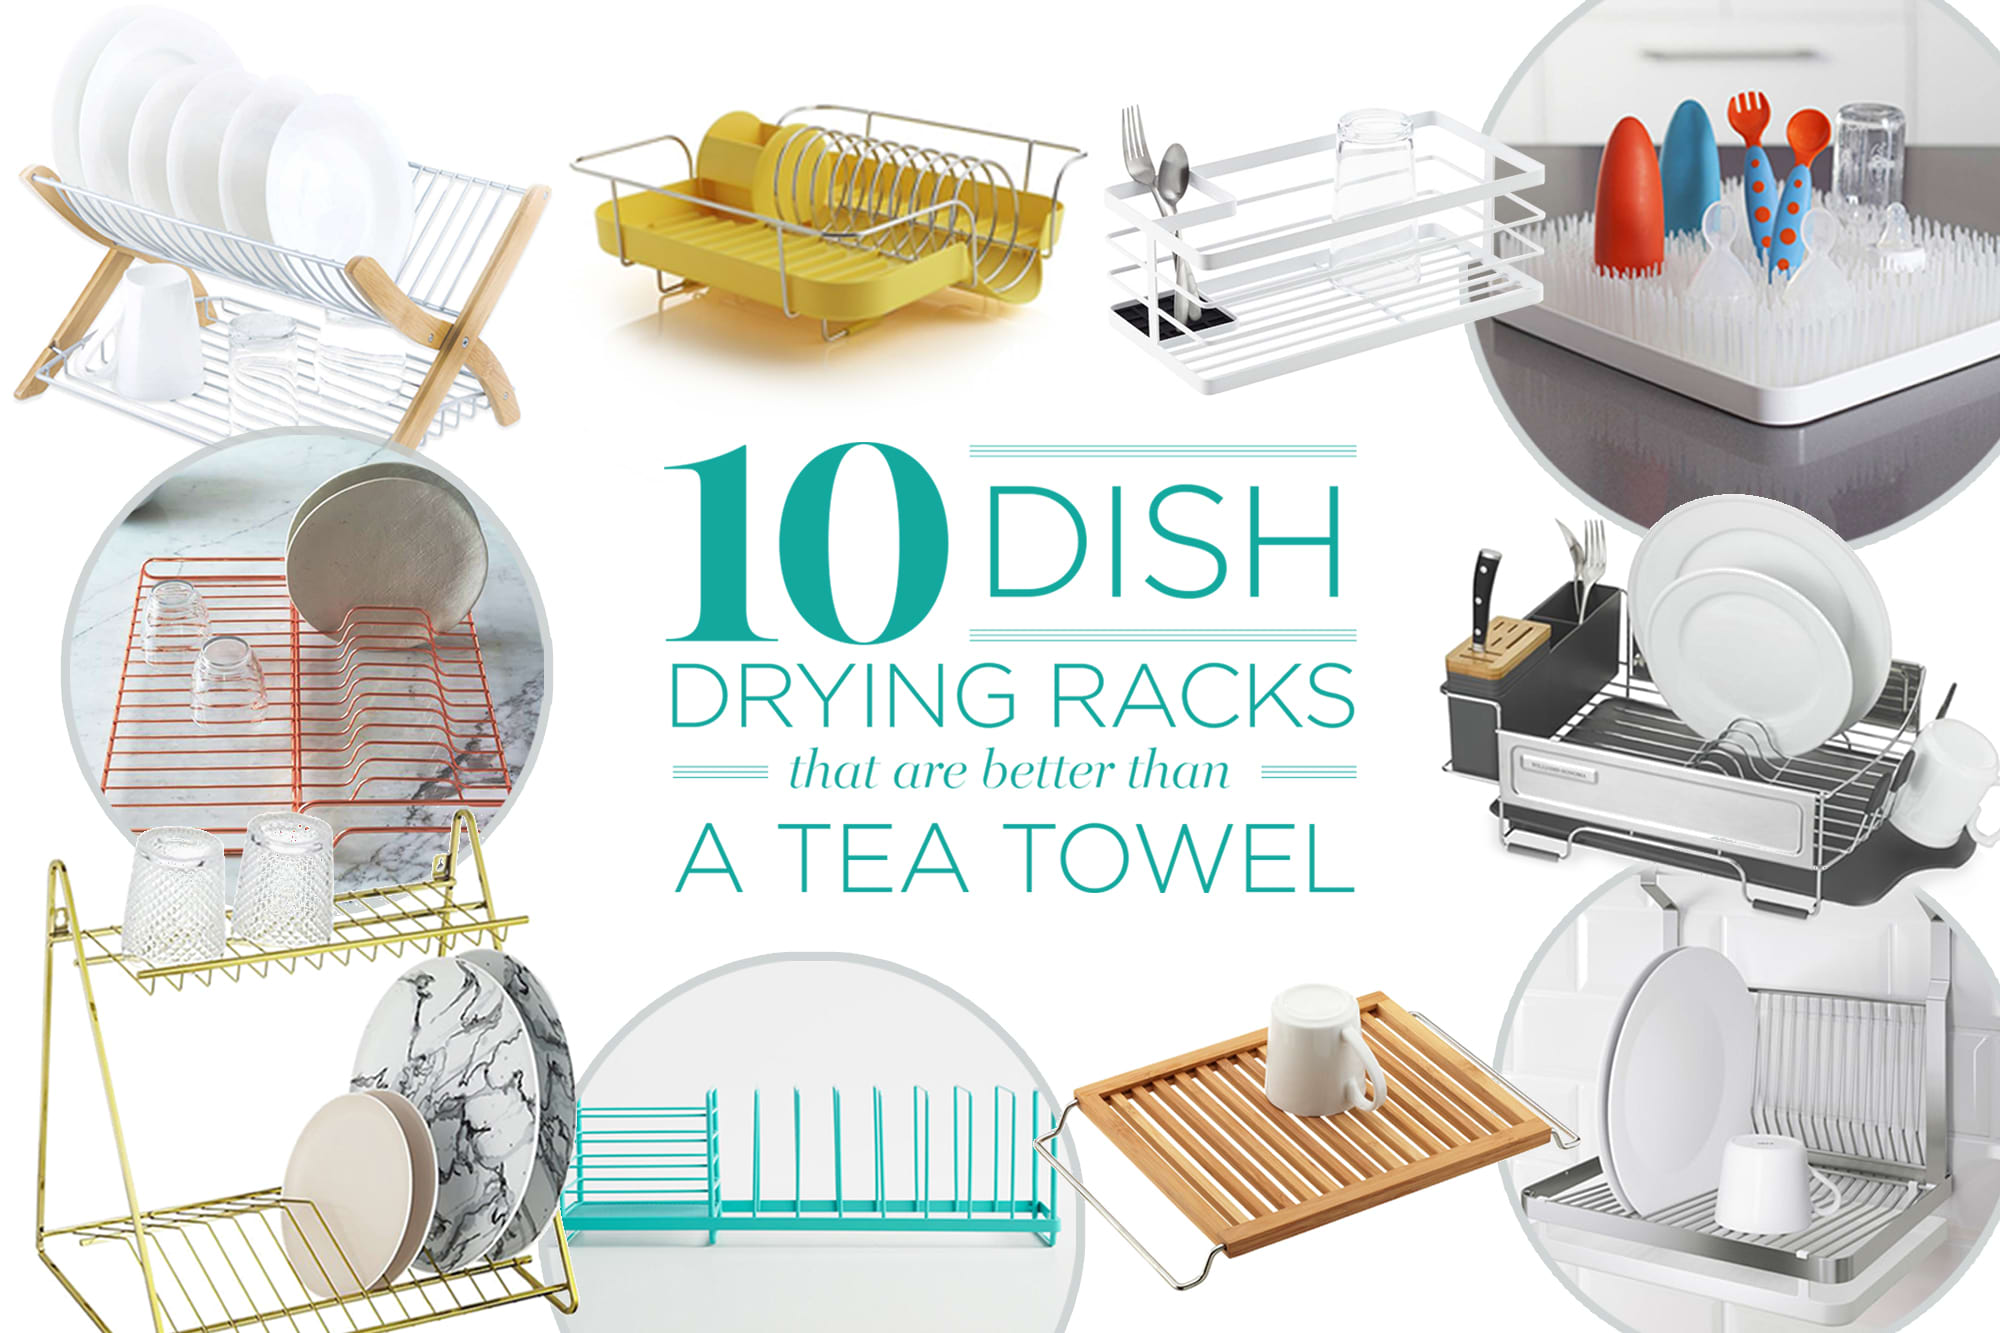 10 Dish Drying Racks That Are Better than a Tea Towel: gallery image 1